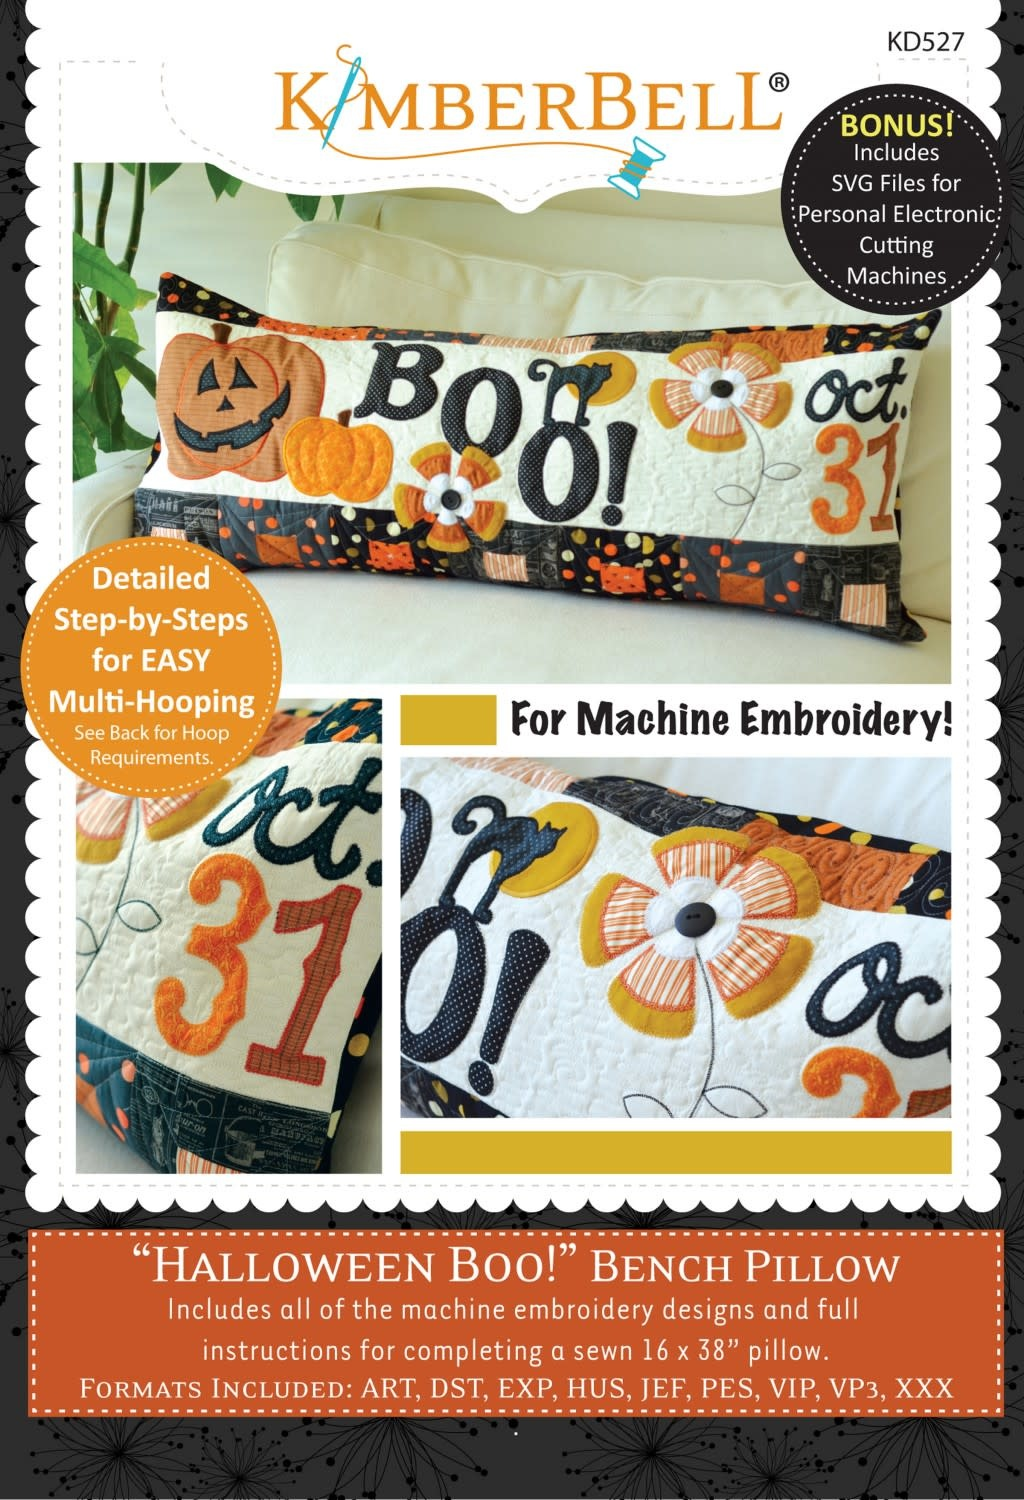 KIMBERBELL DESIGNS Halloween Boo! Bench Pillow Machine Embroidery CD